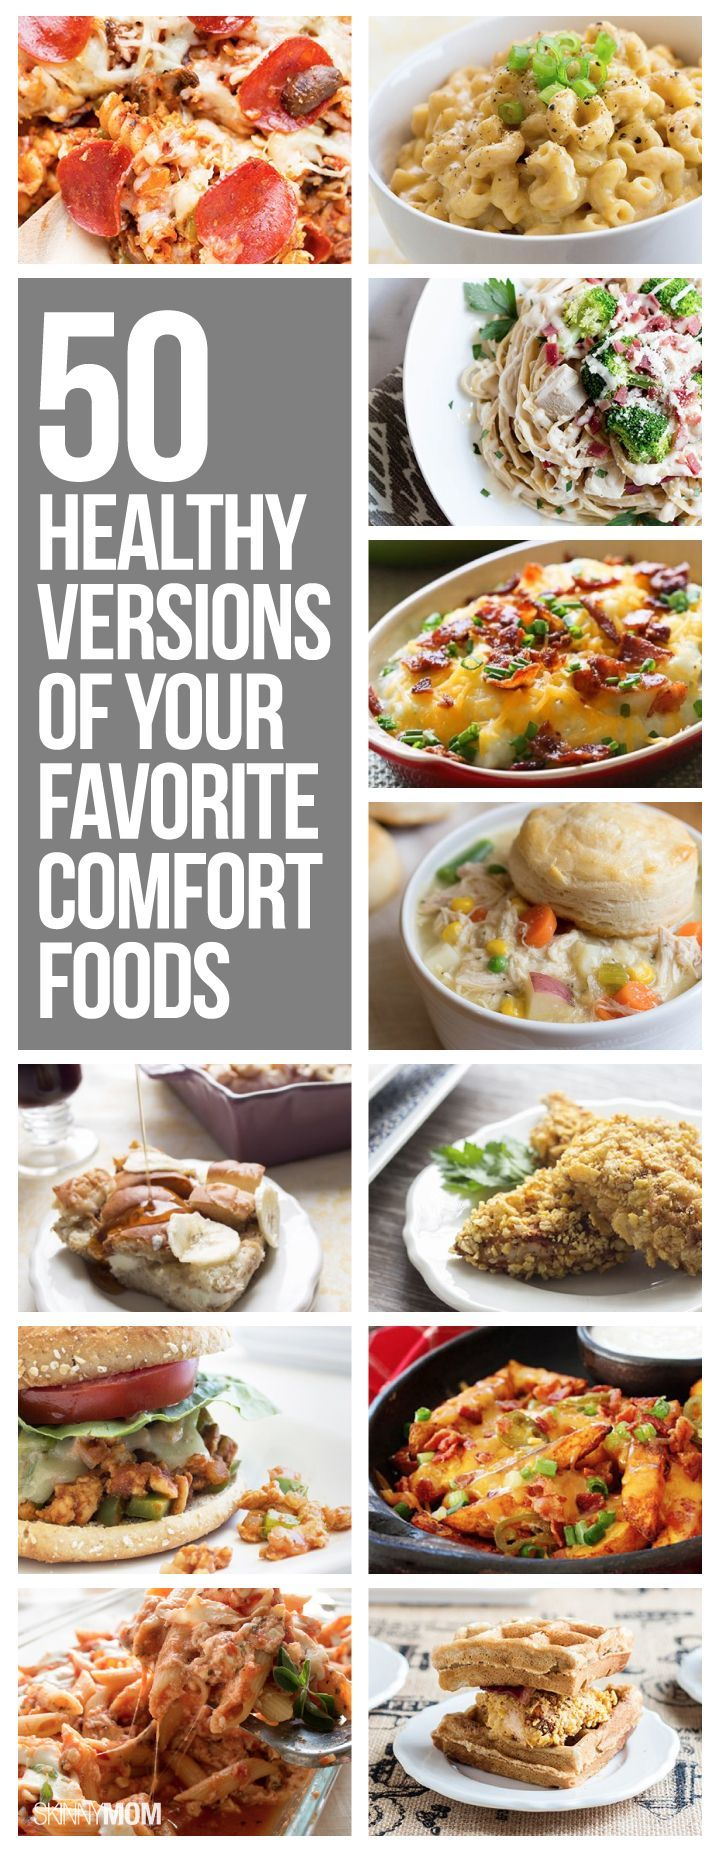 Love junk food? Enjoy these healthier meals for your fave comfort foods.